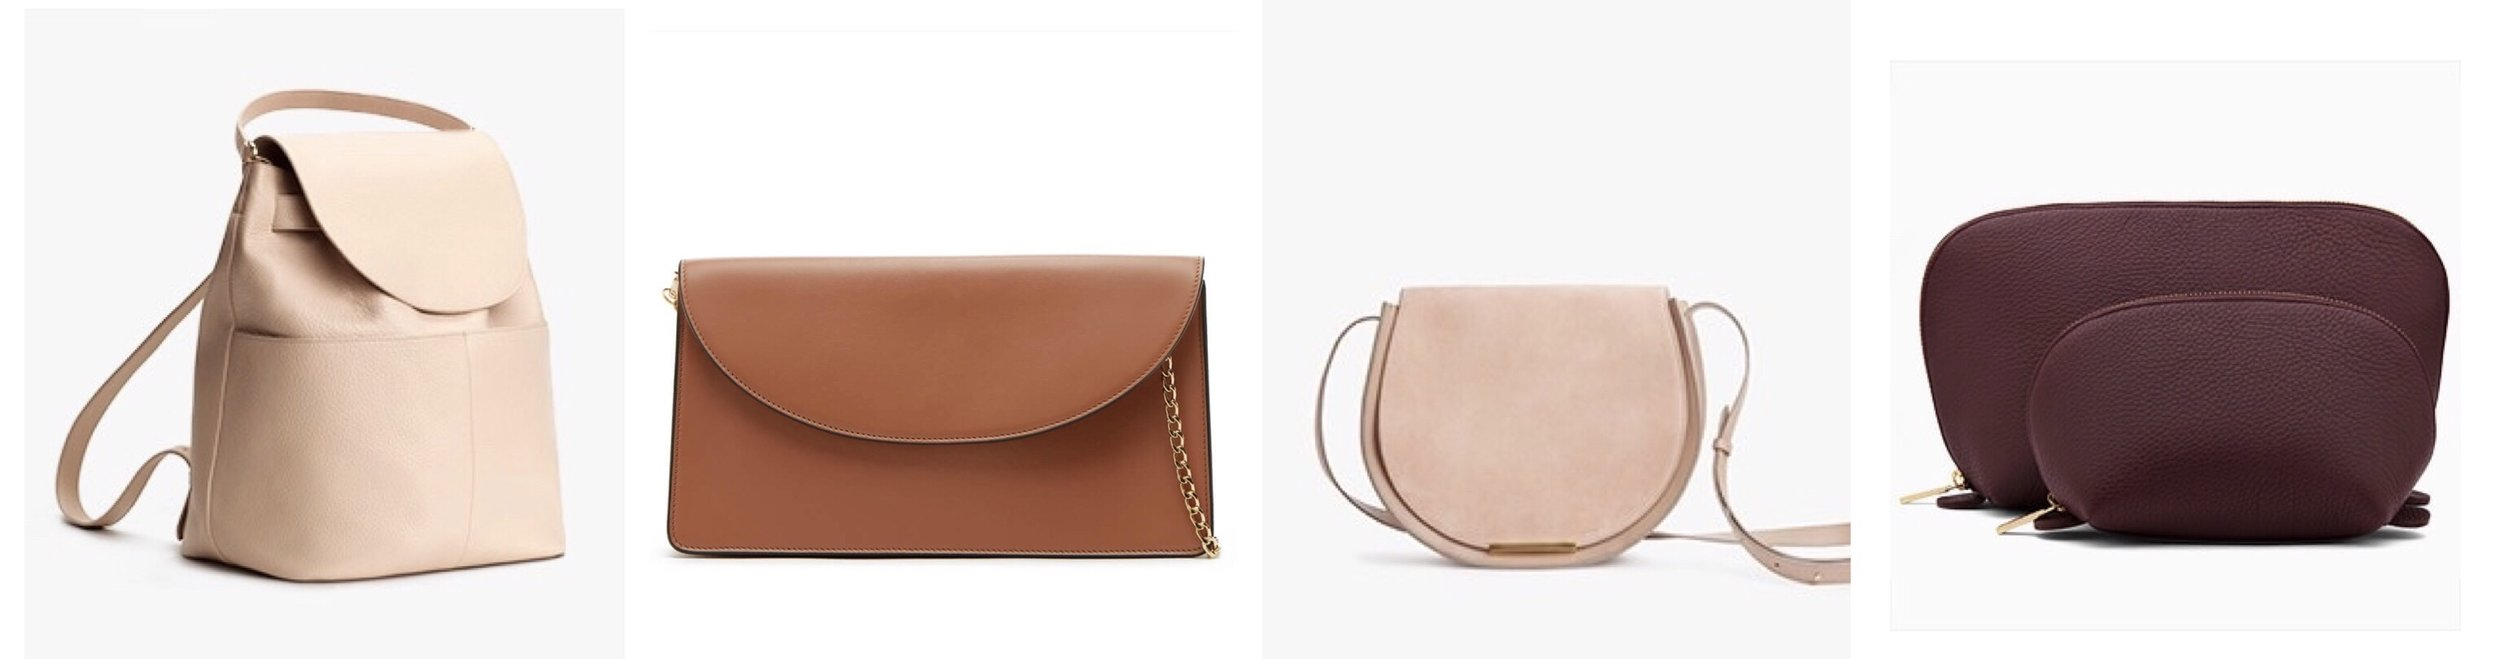 Ethical And Sustainable Handbags